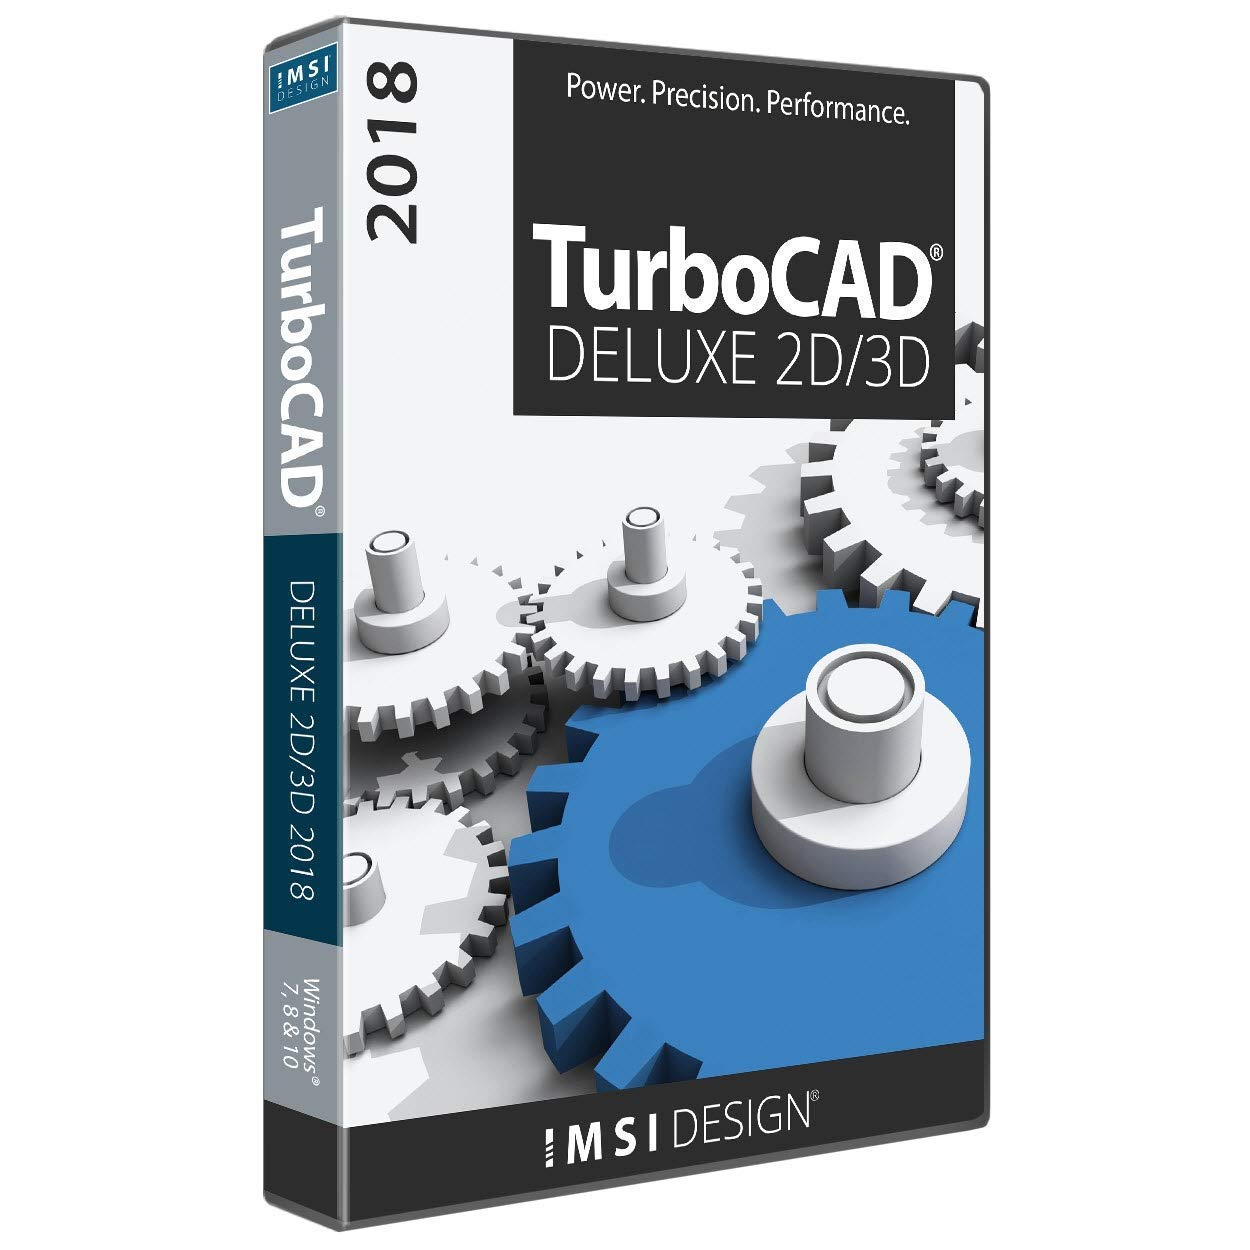 TurboCAD Deluxe 2018 DVD - Powerful 2D/3D CAD Software by TurboCAD